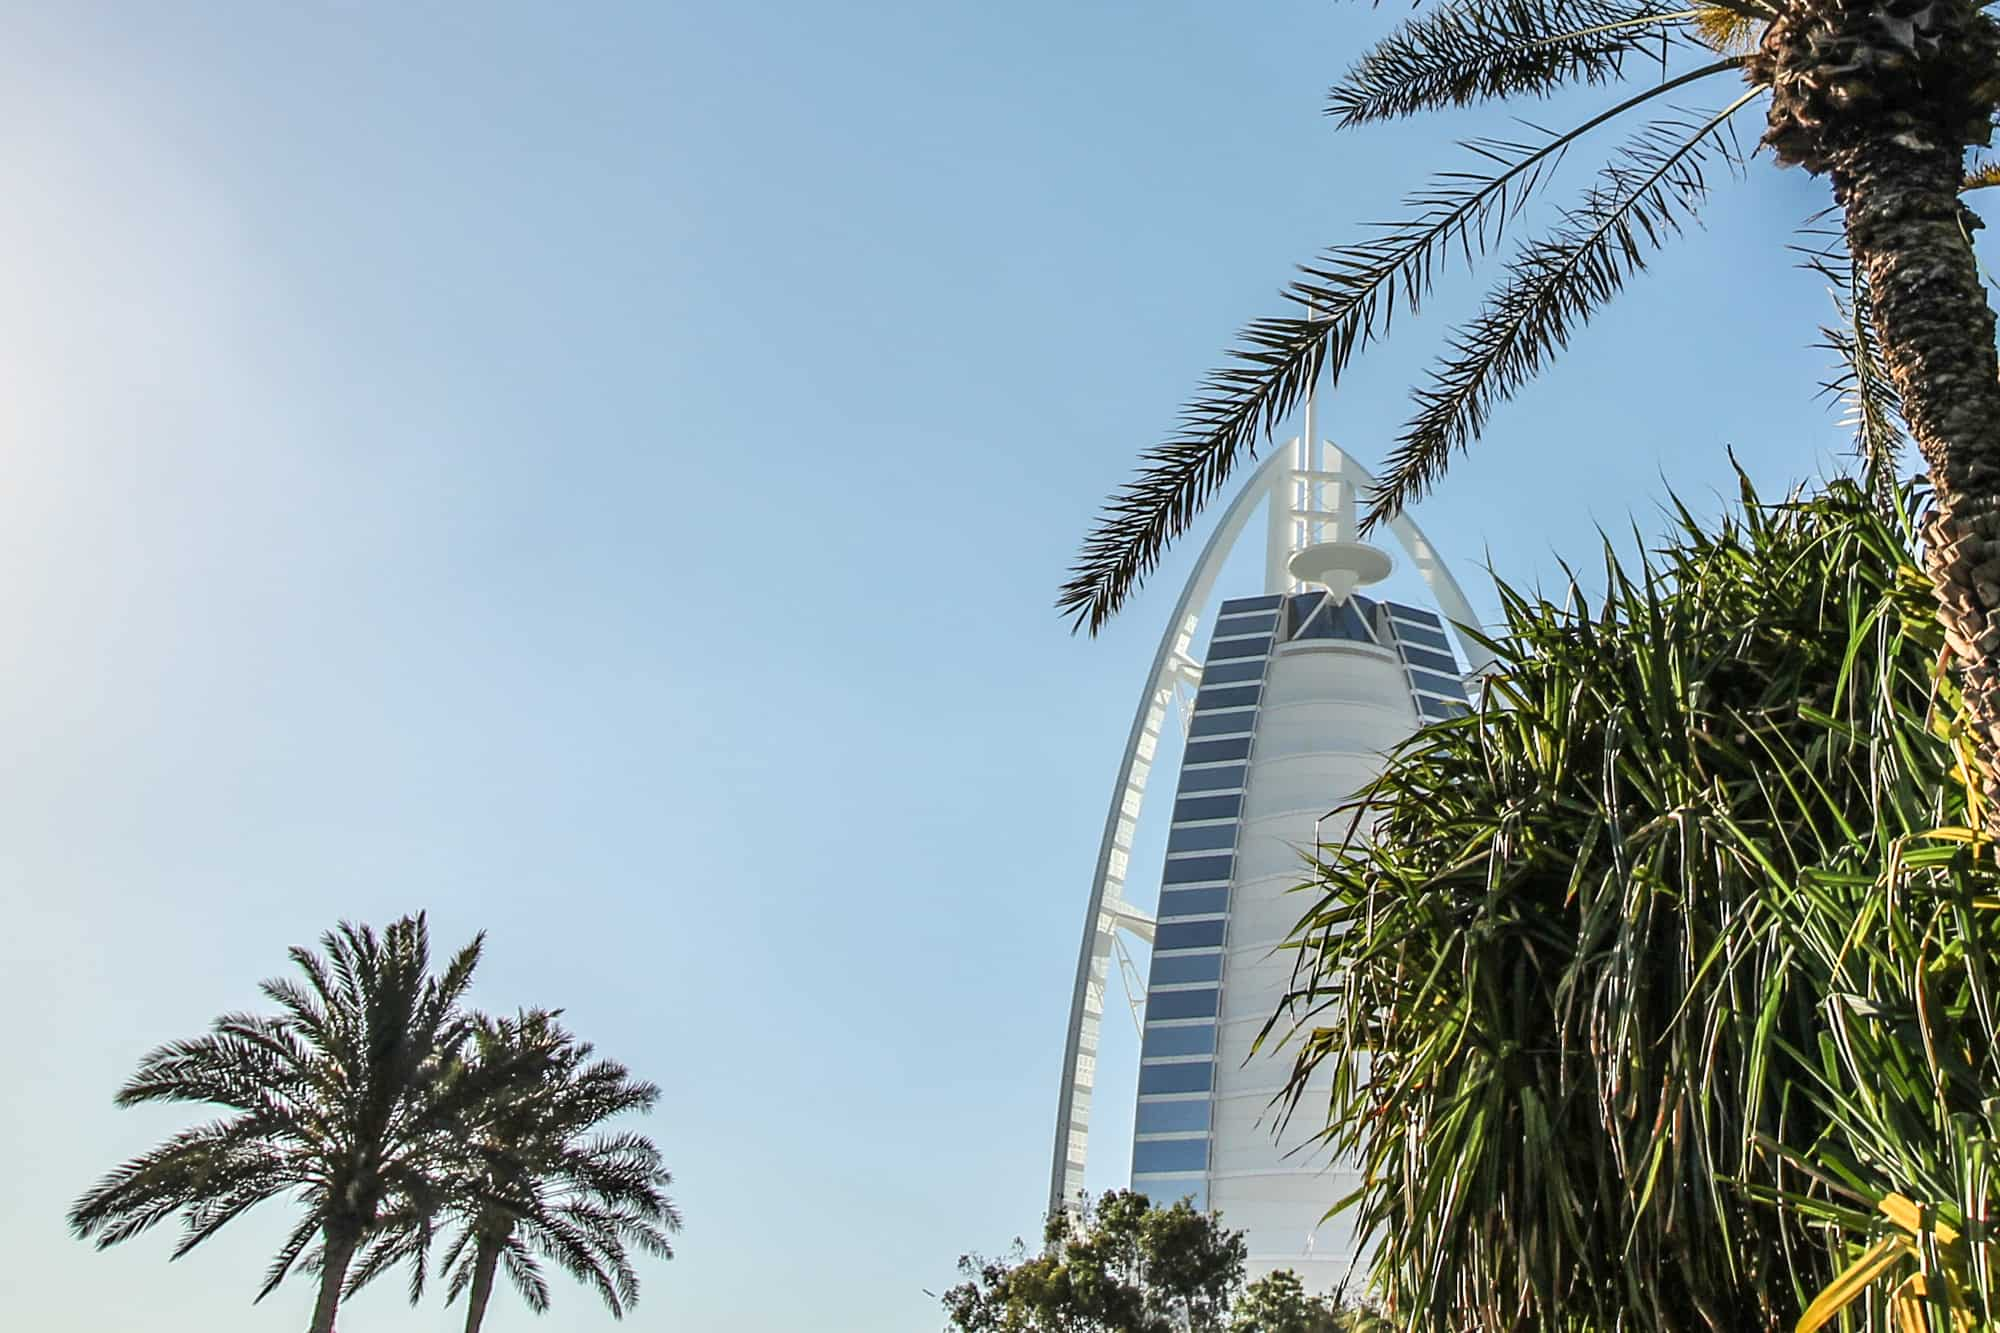 Photo Spots in Dubai – Burj Al Arab